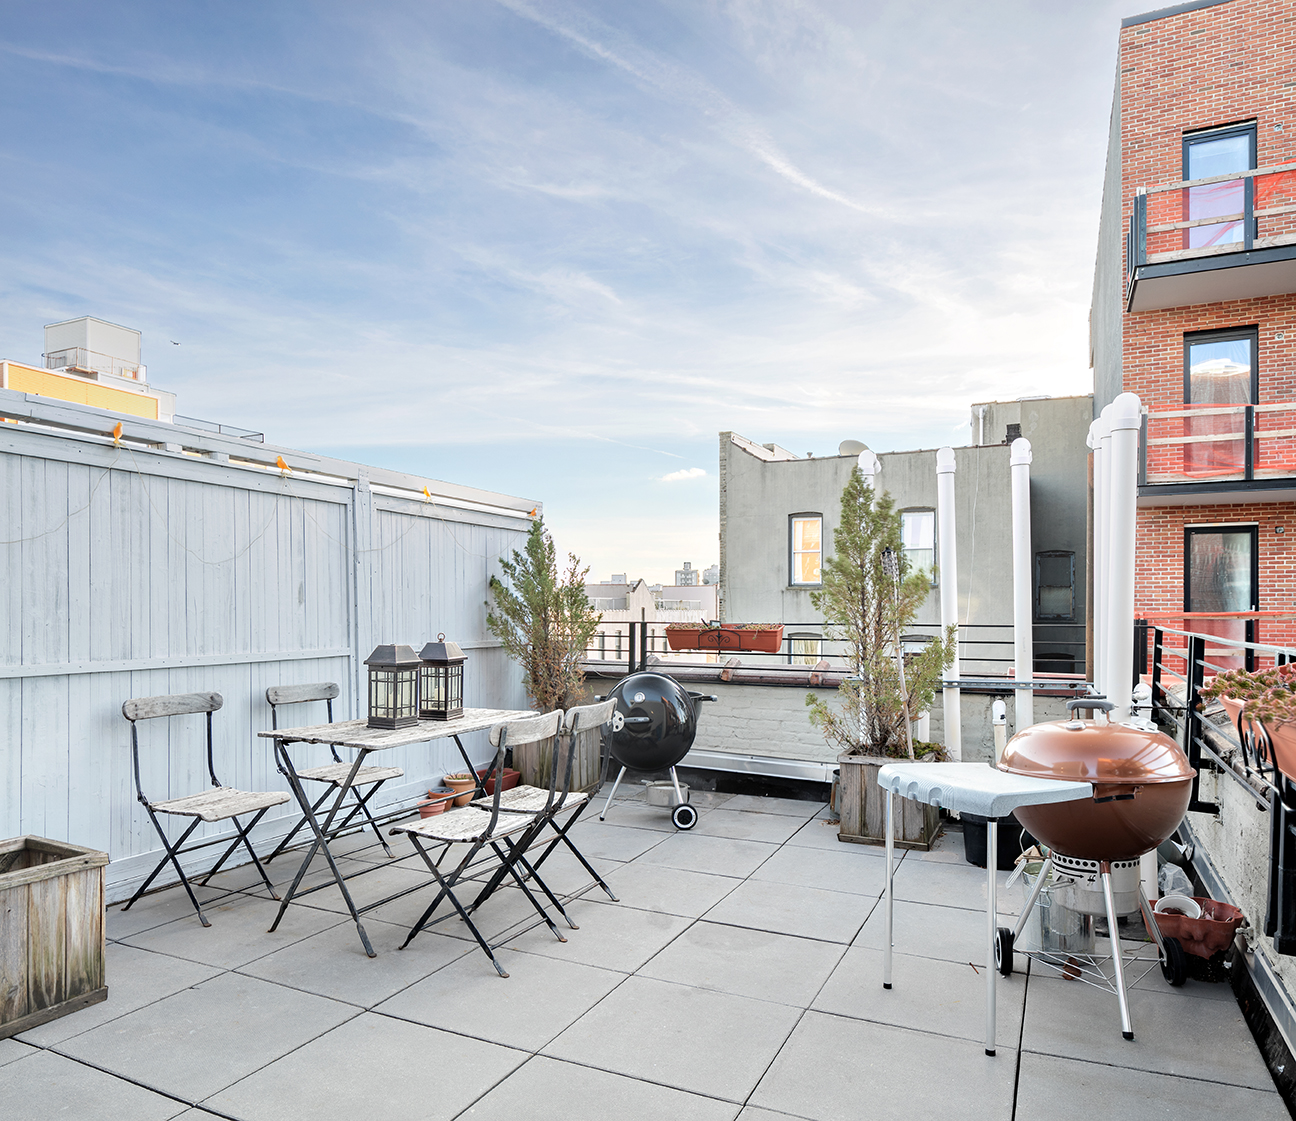 234 North 9th Street, roof deck, patio, outdoor space, sophia lofts, williamsburg